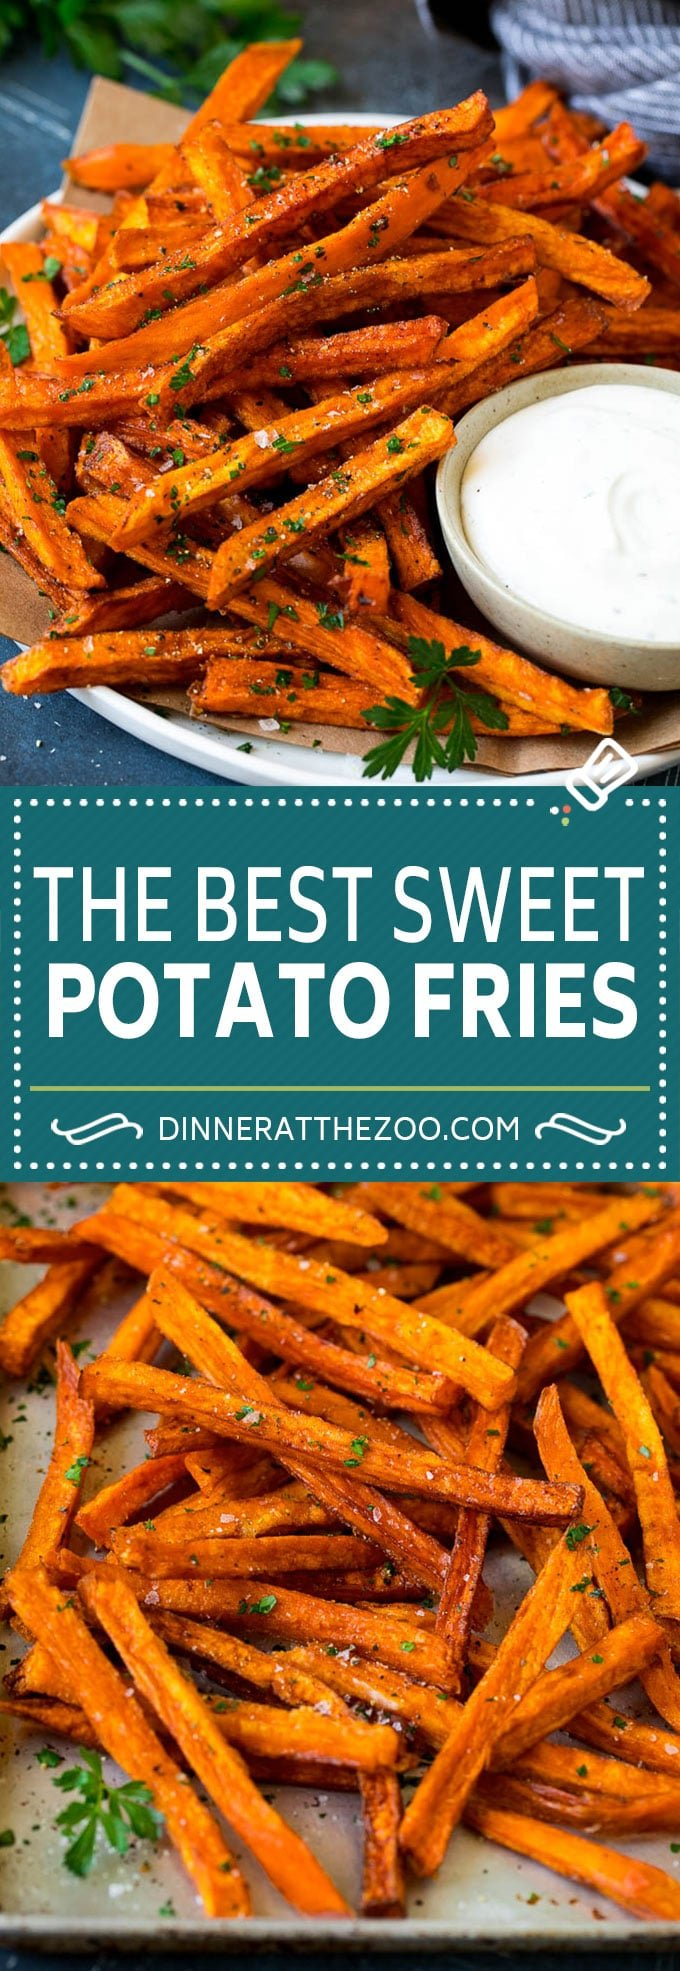 Sweet Potato Fries Baked Or Fried Dinner At The Zoo